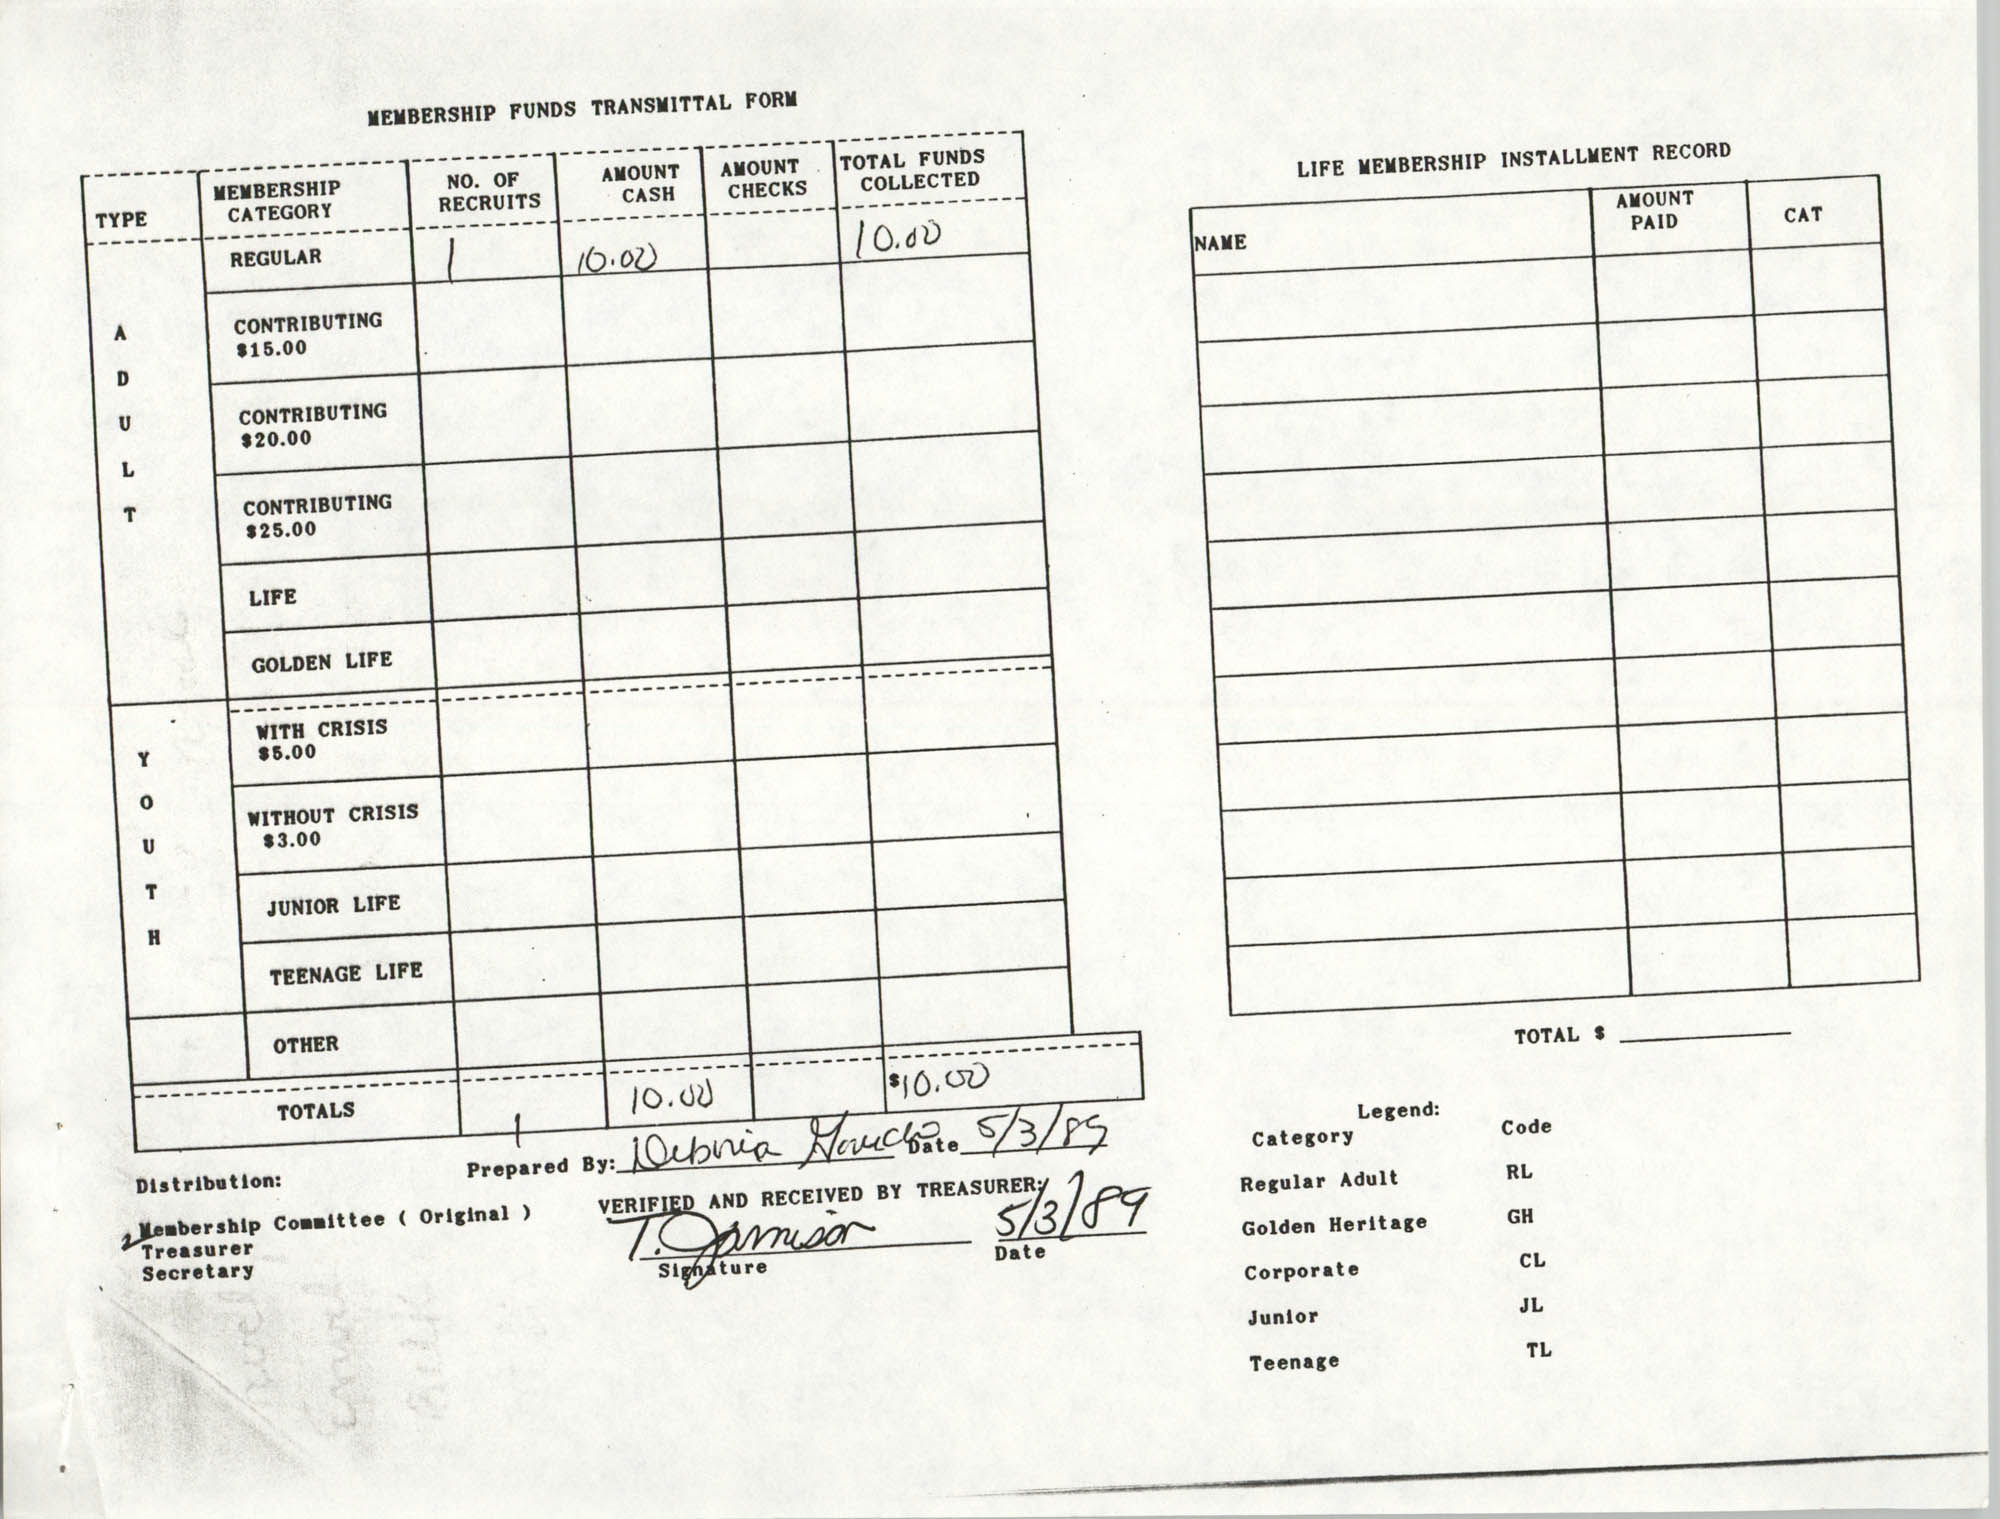 Charleston Branch of the NAACP Funds Transmittal Forms, May 1989, Page 1